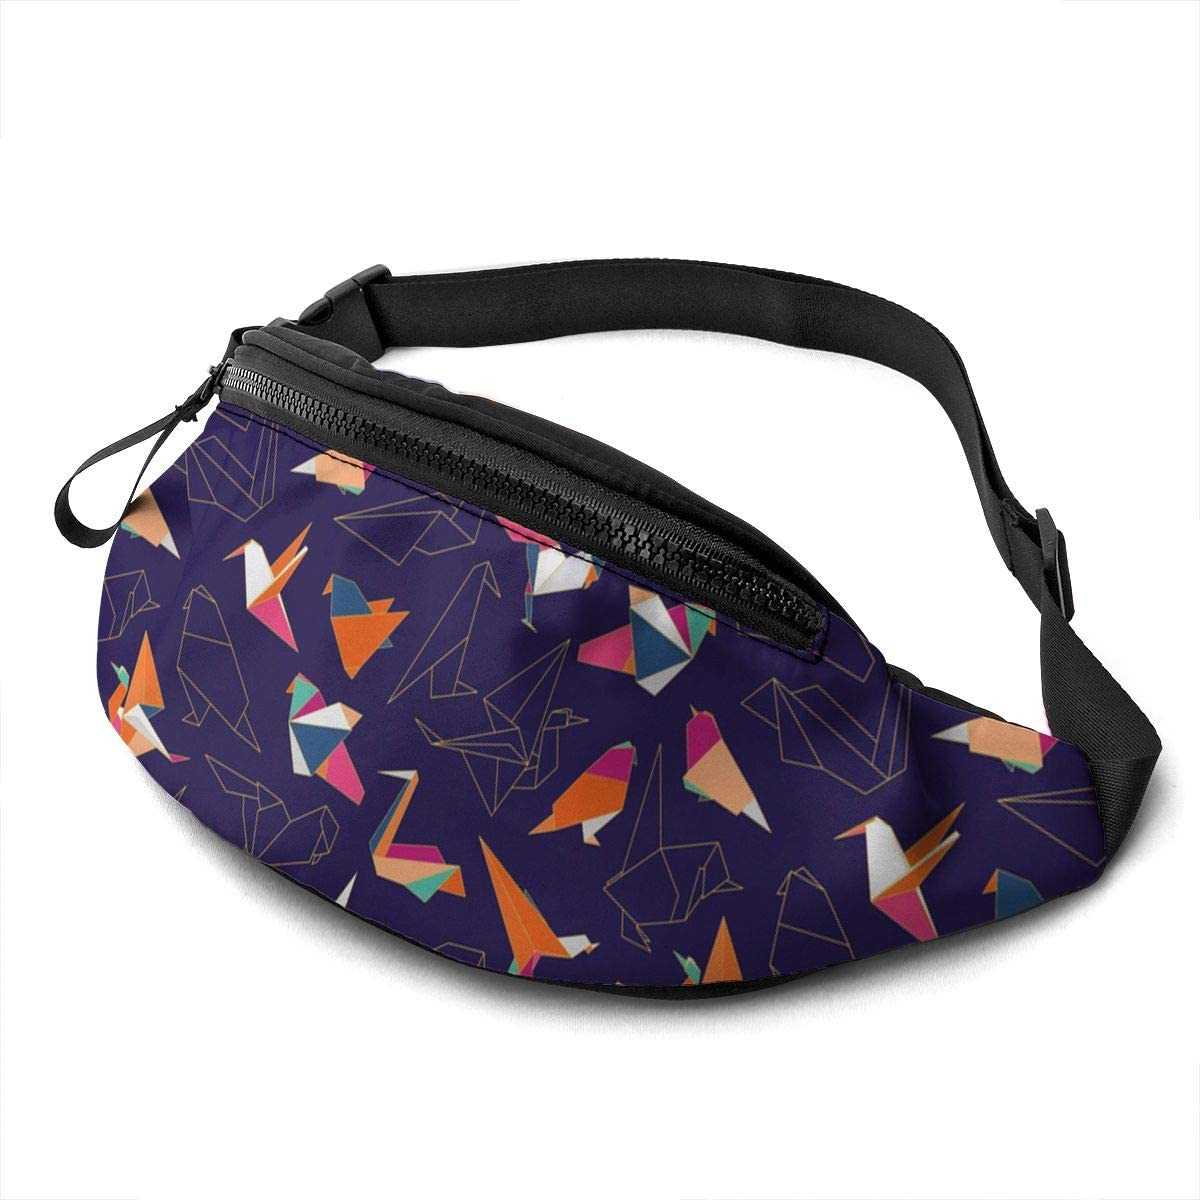 Colorful origami paper swallow birds Fanny Pack for Men Women Waist Pack Bag with Headphone Jack and Zipper Pockets Adjustable Straps